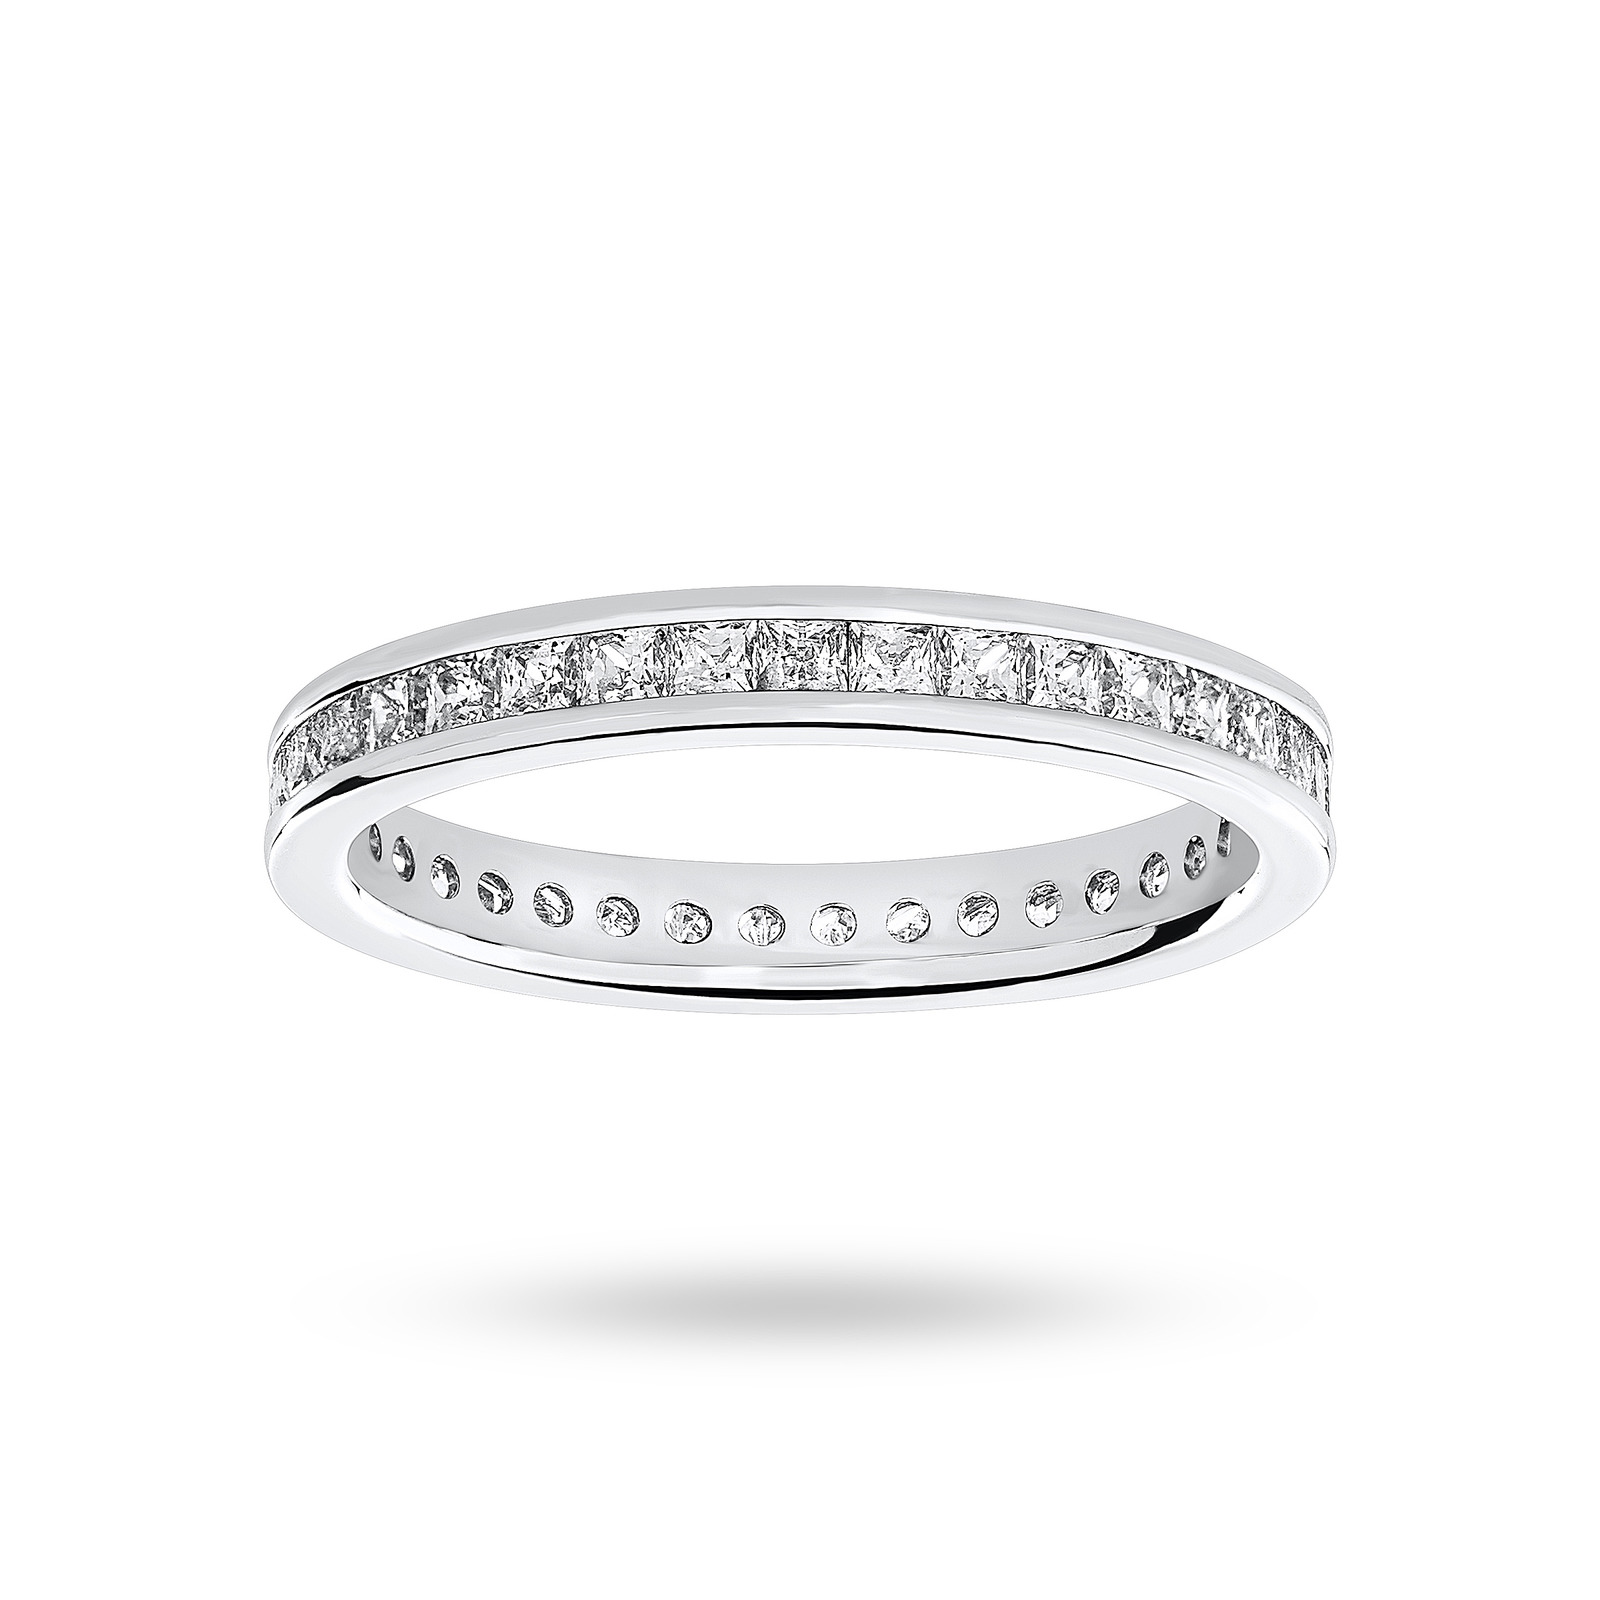 Platinum 1.00 Carat Princess Cut Channel Set Full Eternity Ring